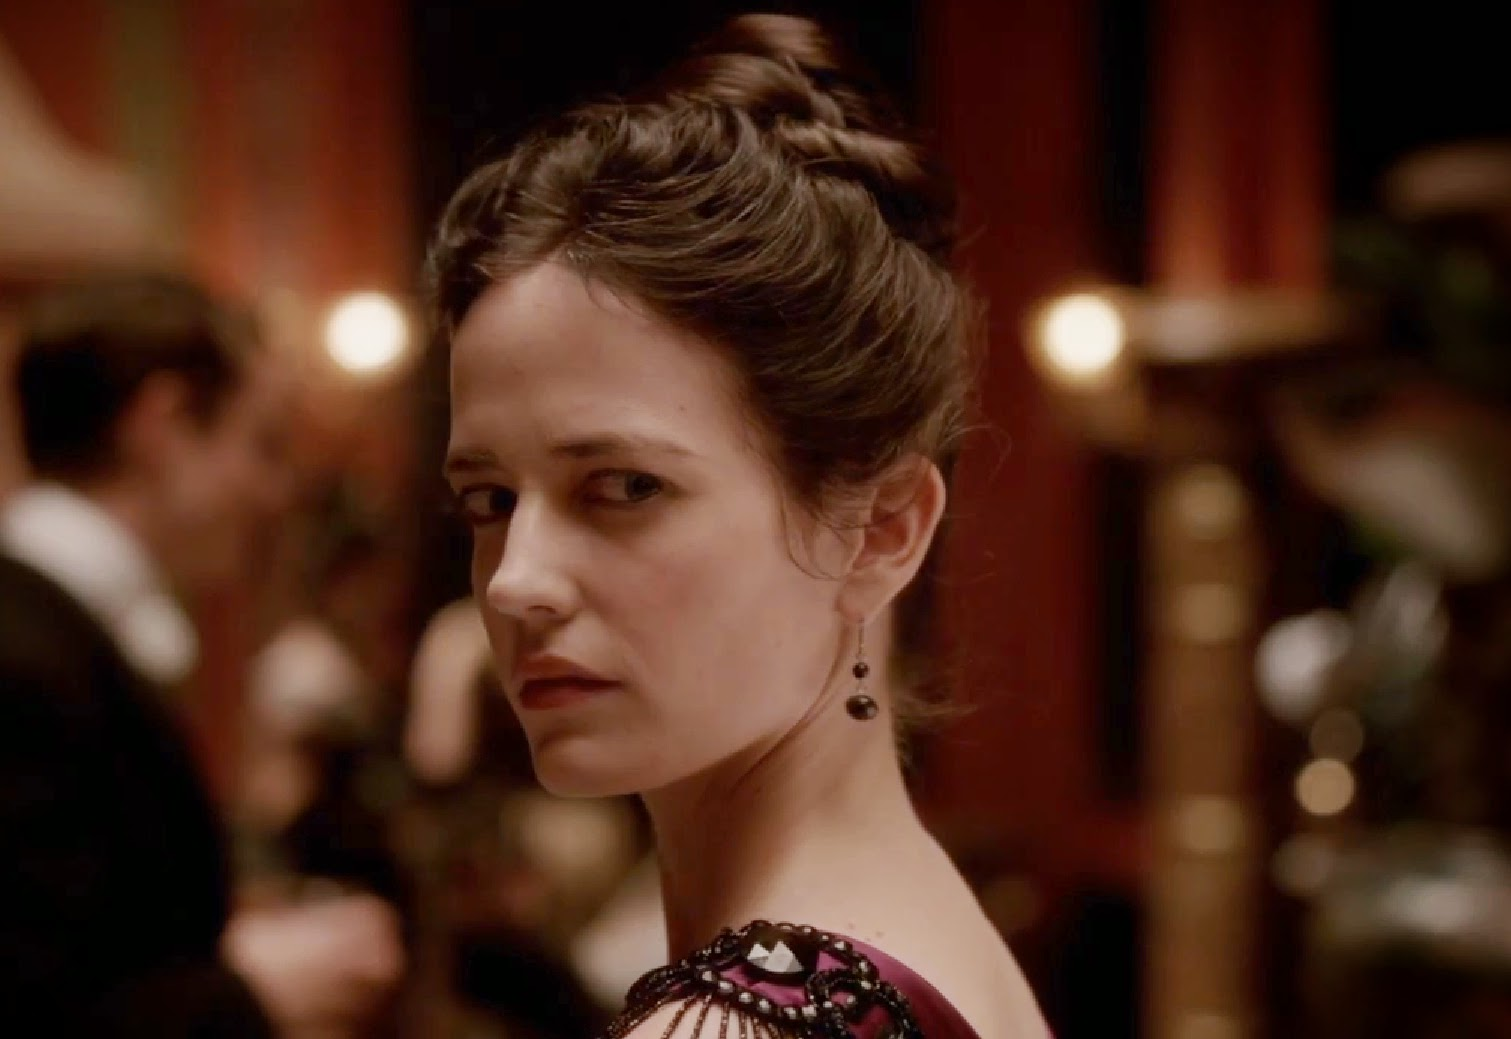 Penny Dreadful Vanessa Ives Showtime wicked eyes stare pictures photos screencaps